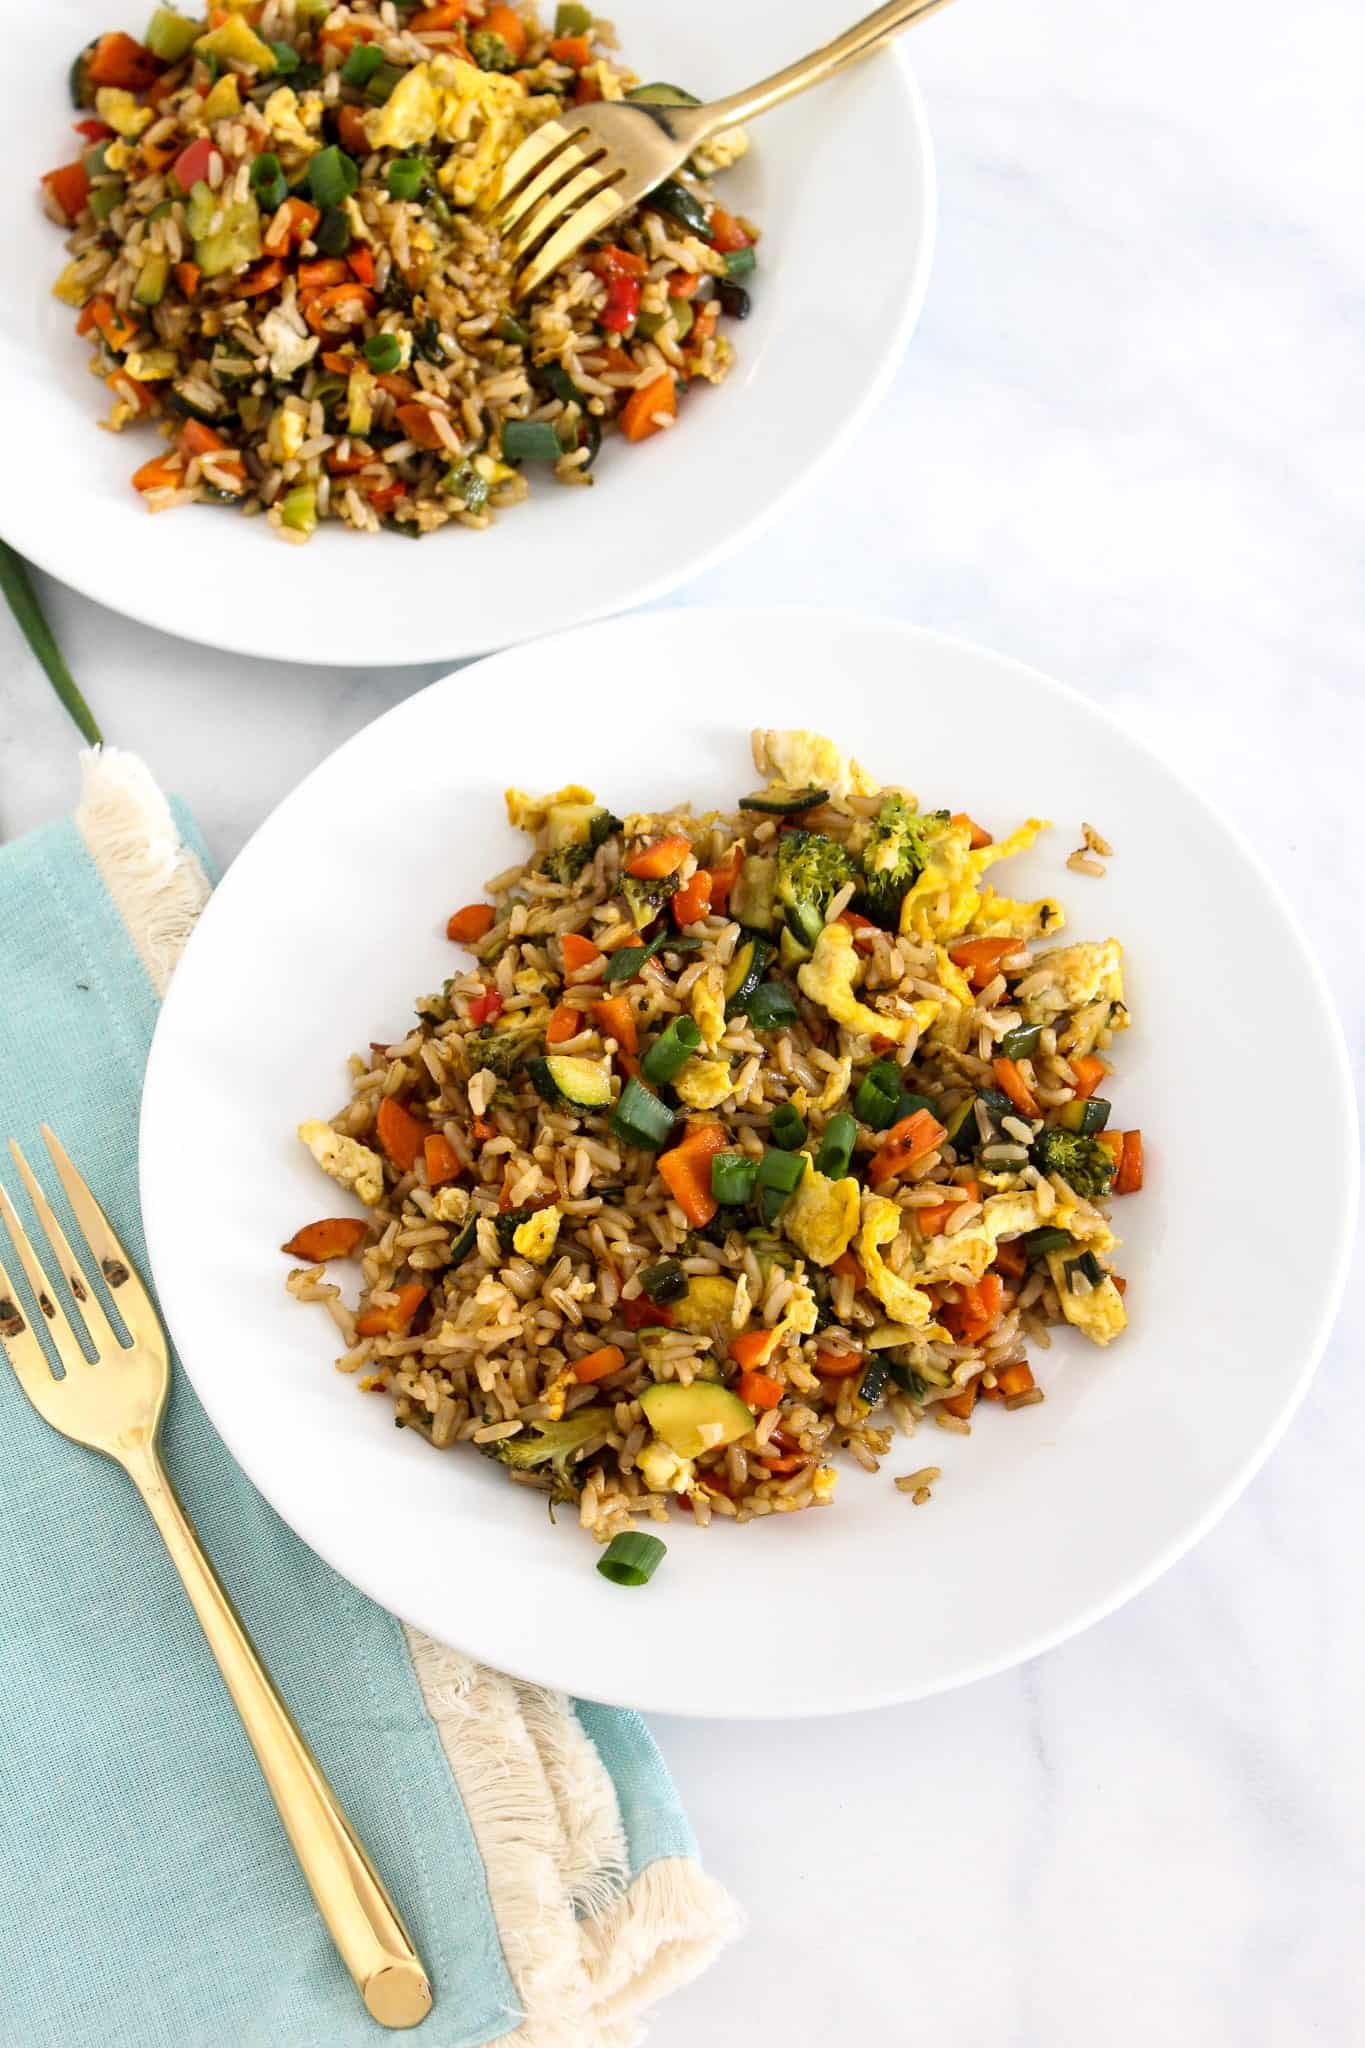 low FODMAP Vegetable Fried Rice #lowfodmap #glutenfree #dairyfree #fodyfoods